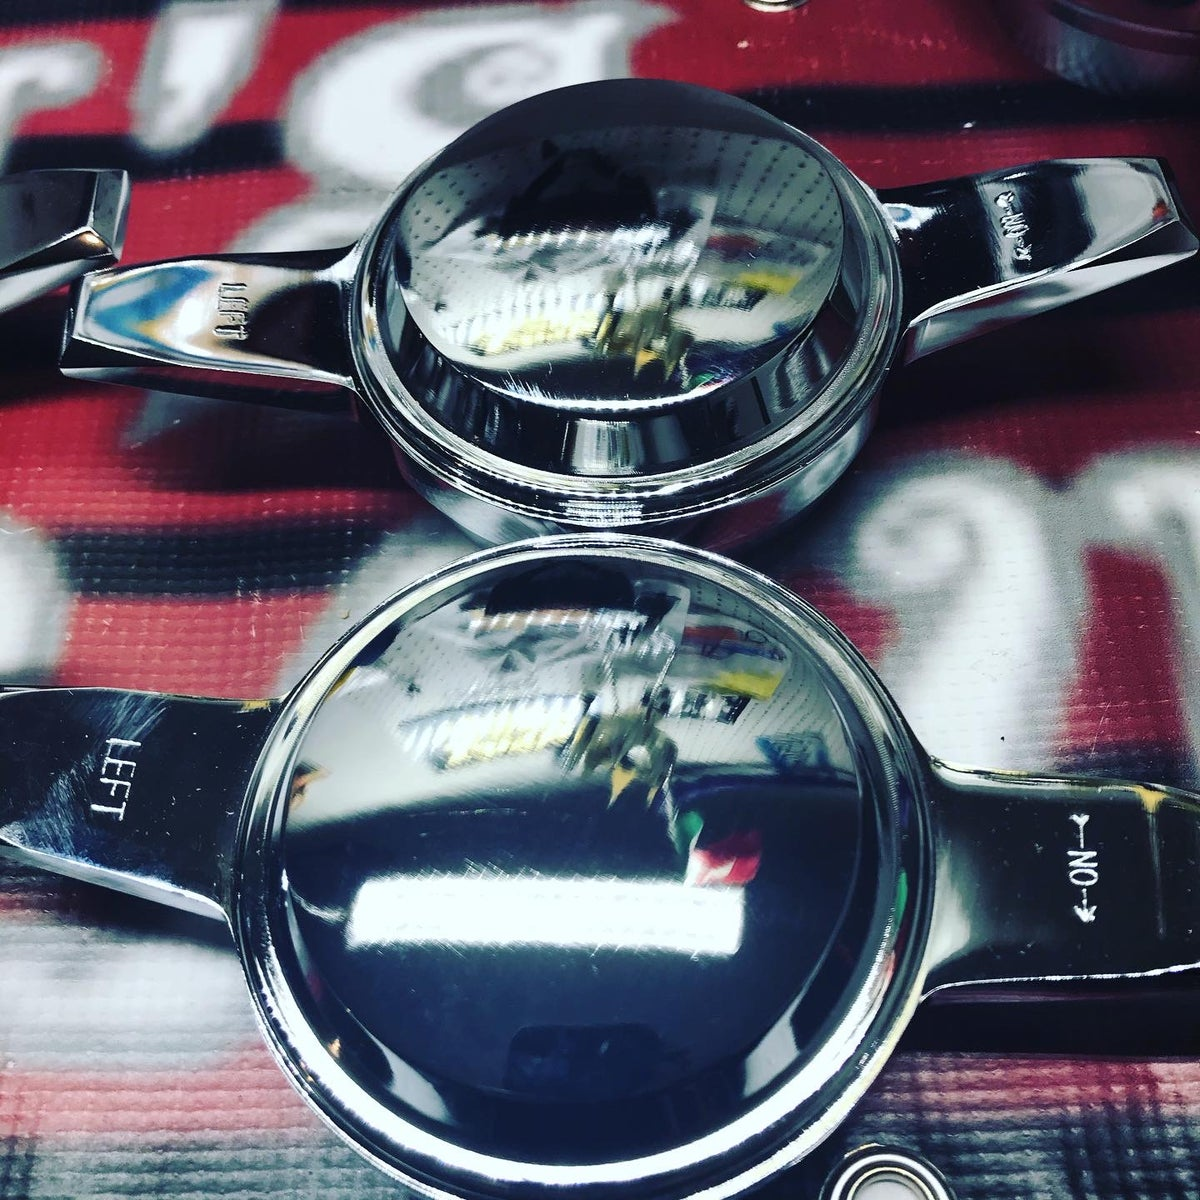 Image of Smooth chrome knock off spinners